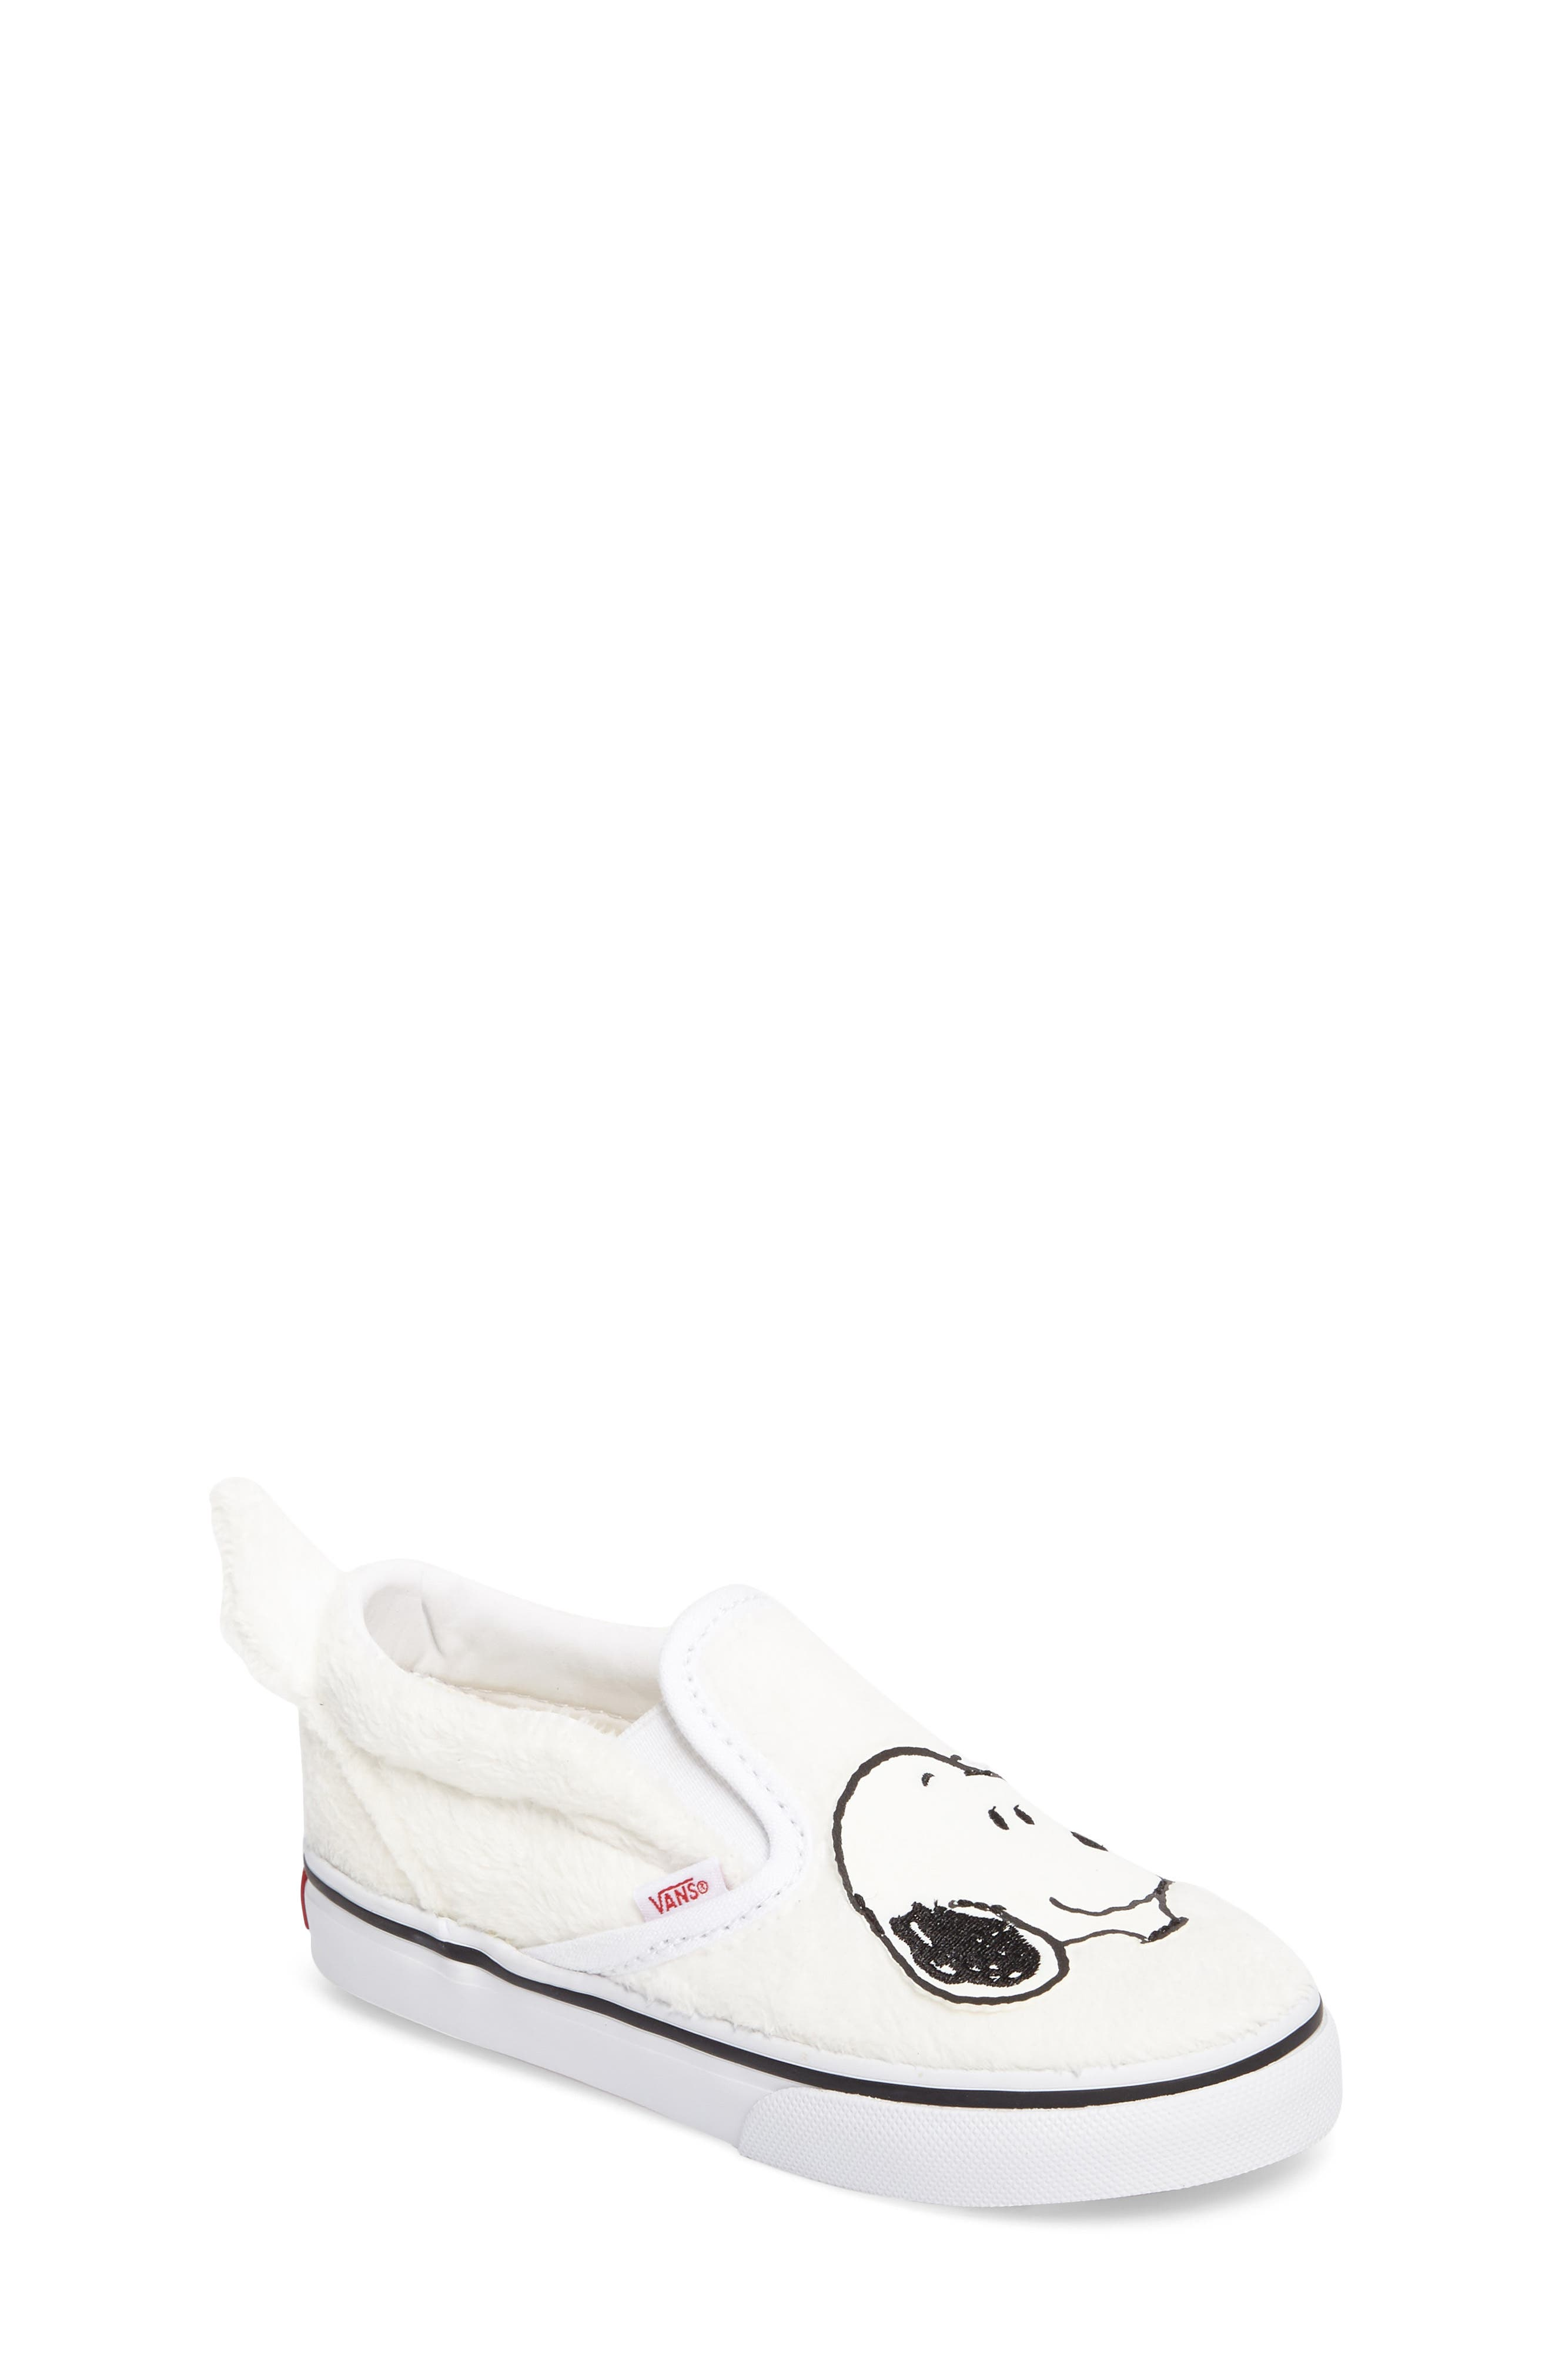 Vans x Peanuts Slip-On Sneaker (Baby, Walker, Toddler, Little Kid & Big Kid)